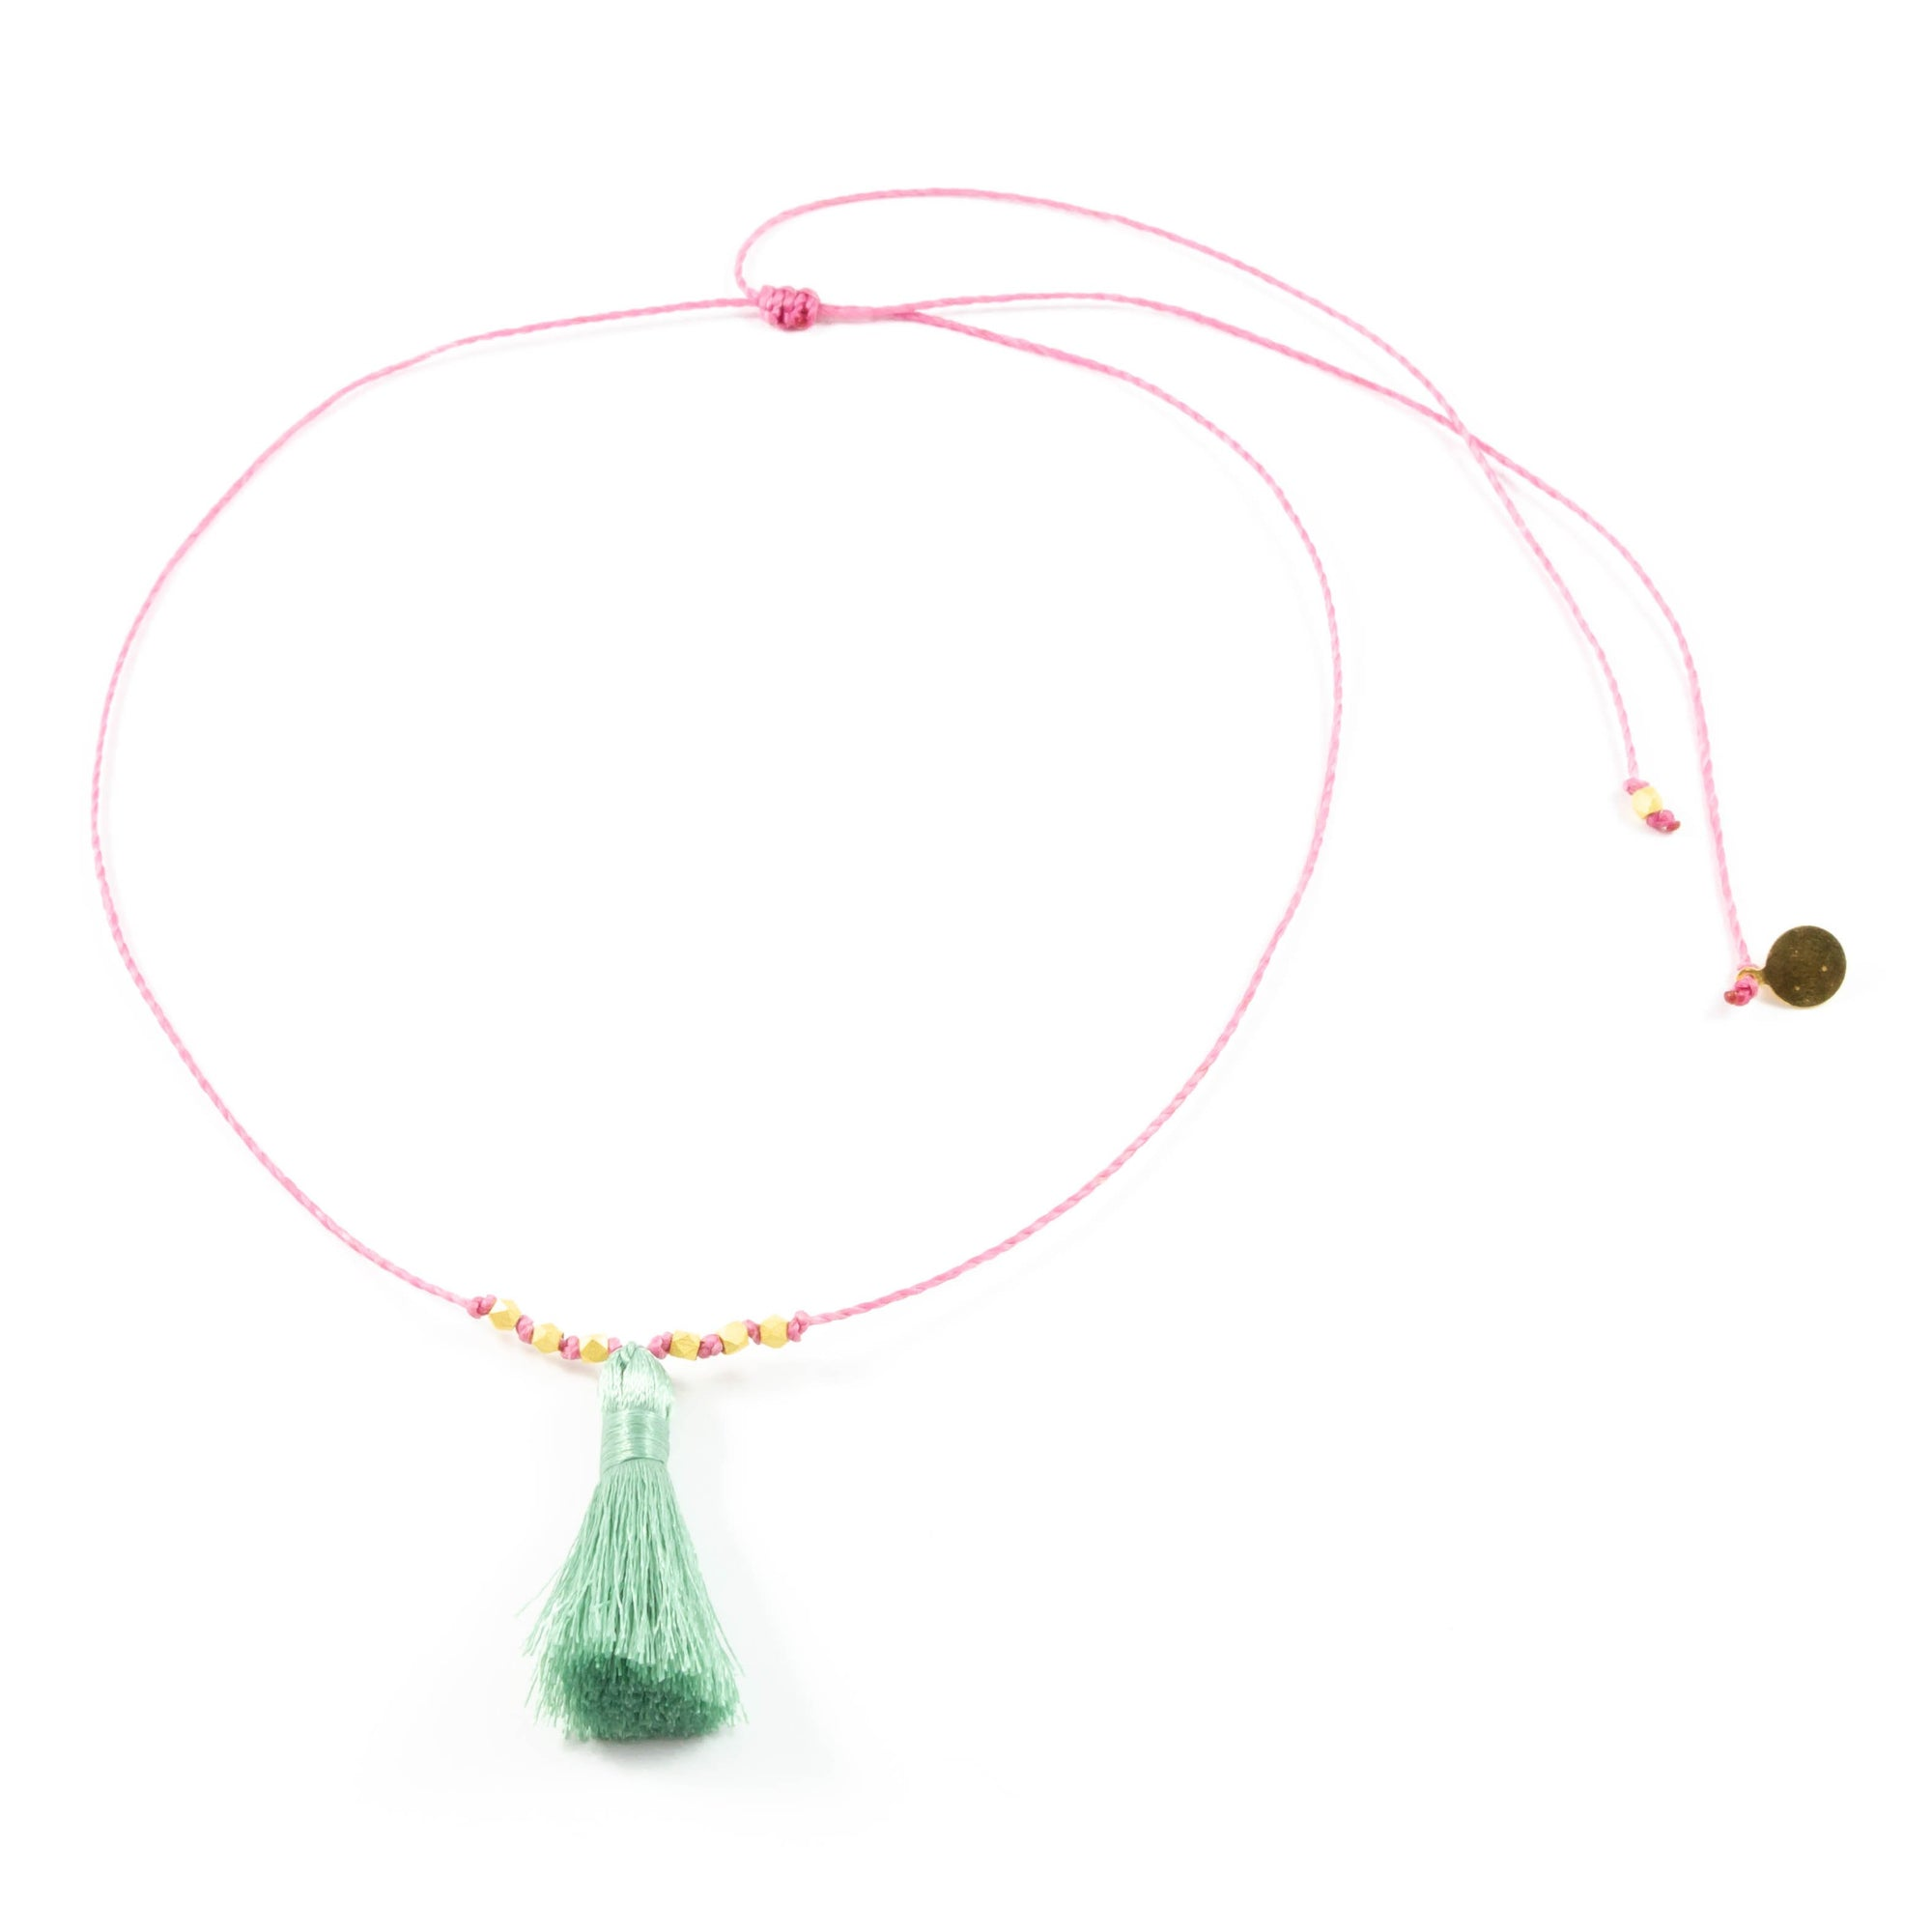 Rose w/ Cucumber Tassel On a String Necklace in Gold